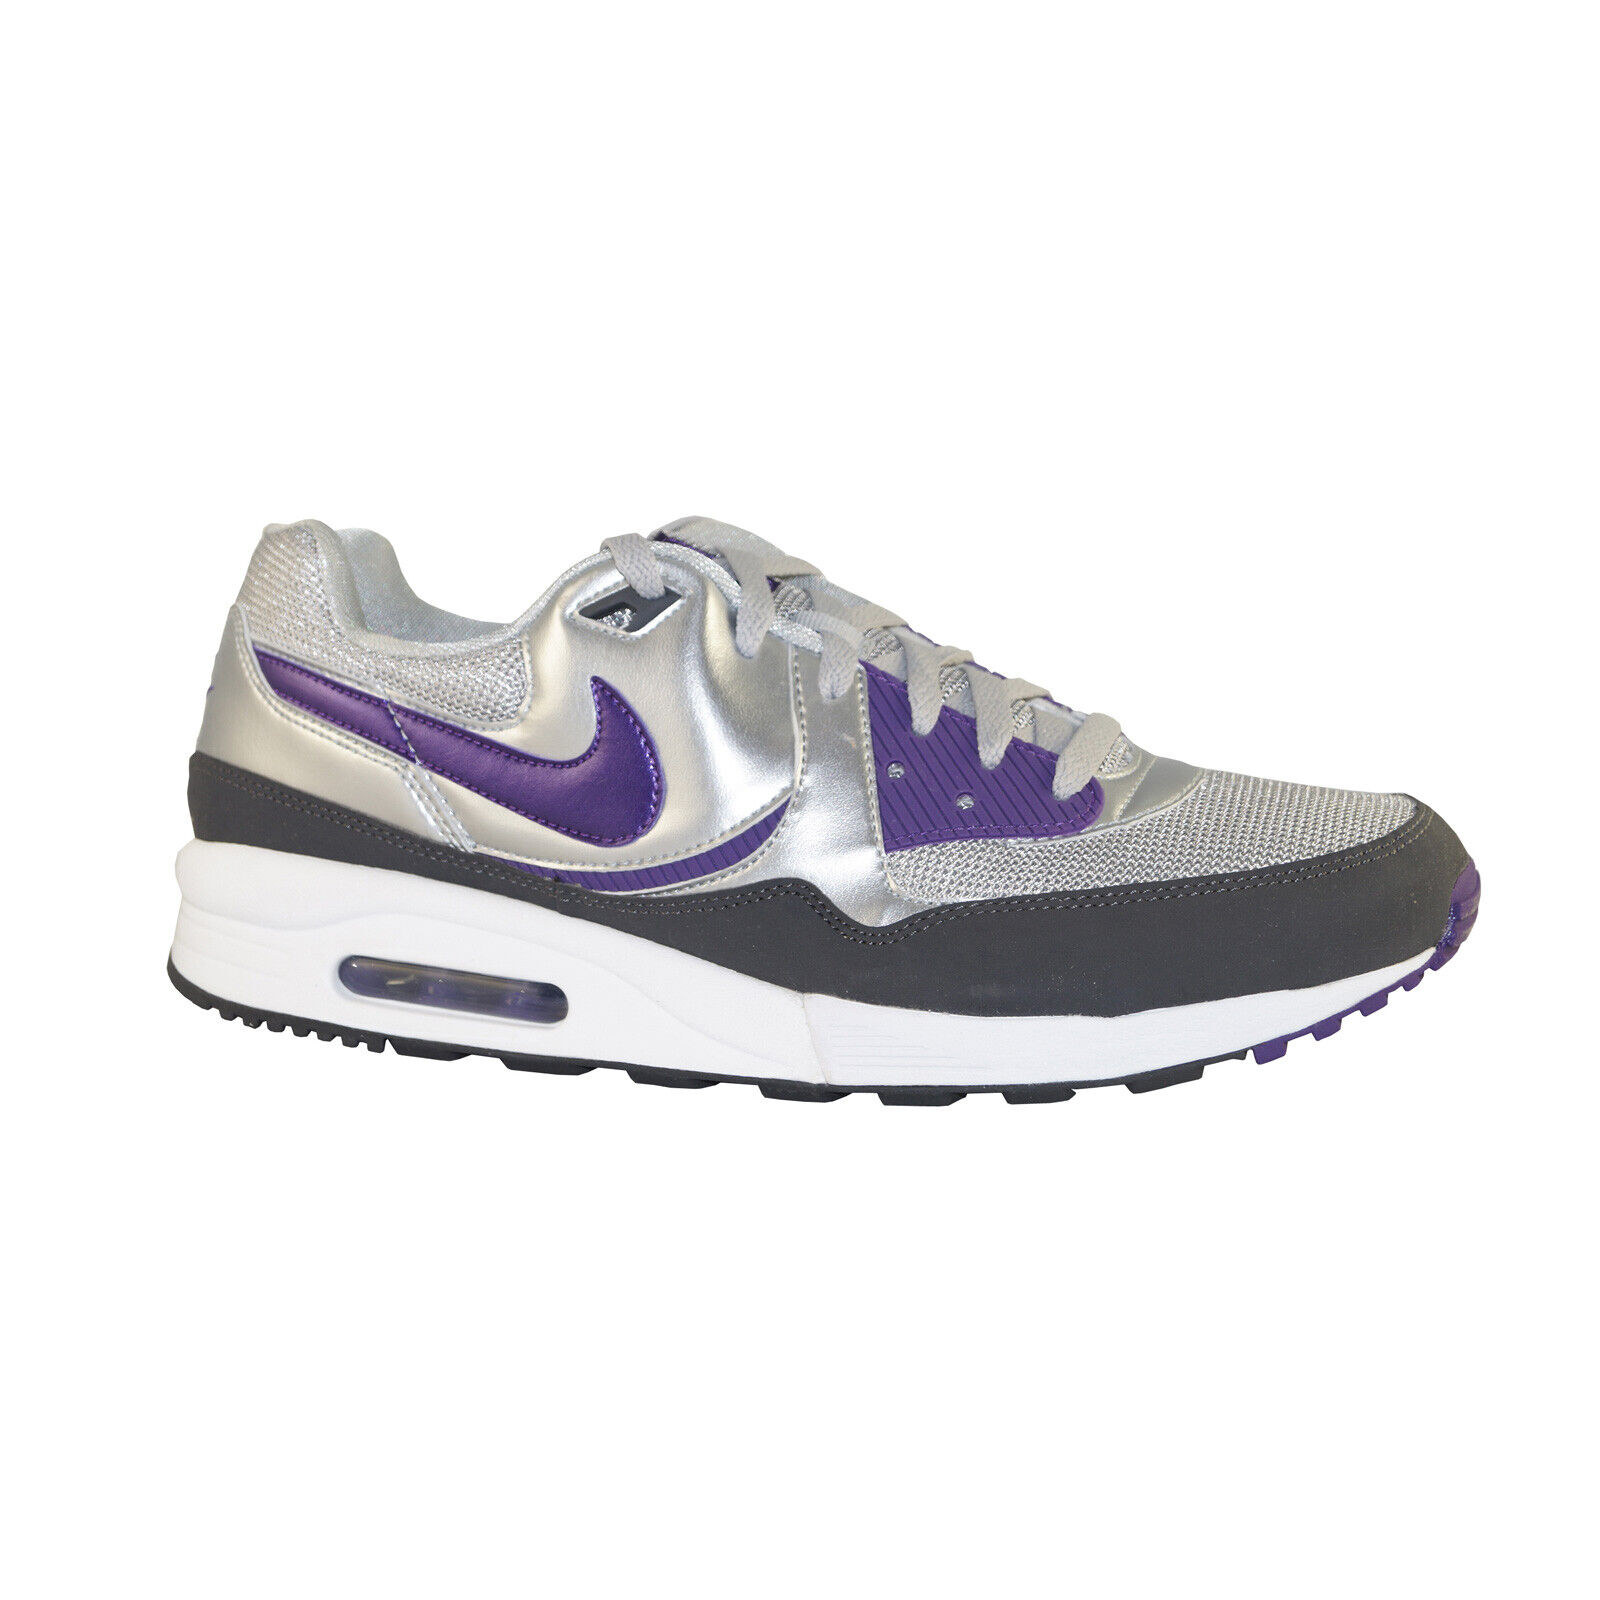 Nike Air Max Light Classic Sneakers Sport Shoes Trainers silver 354051 002 SALE